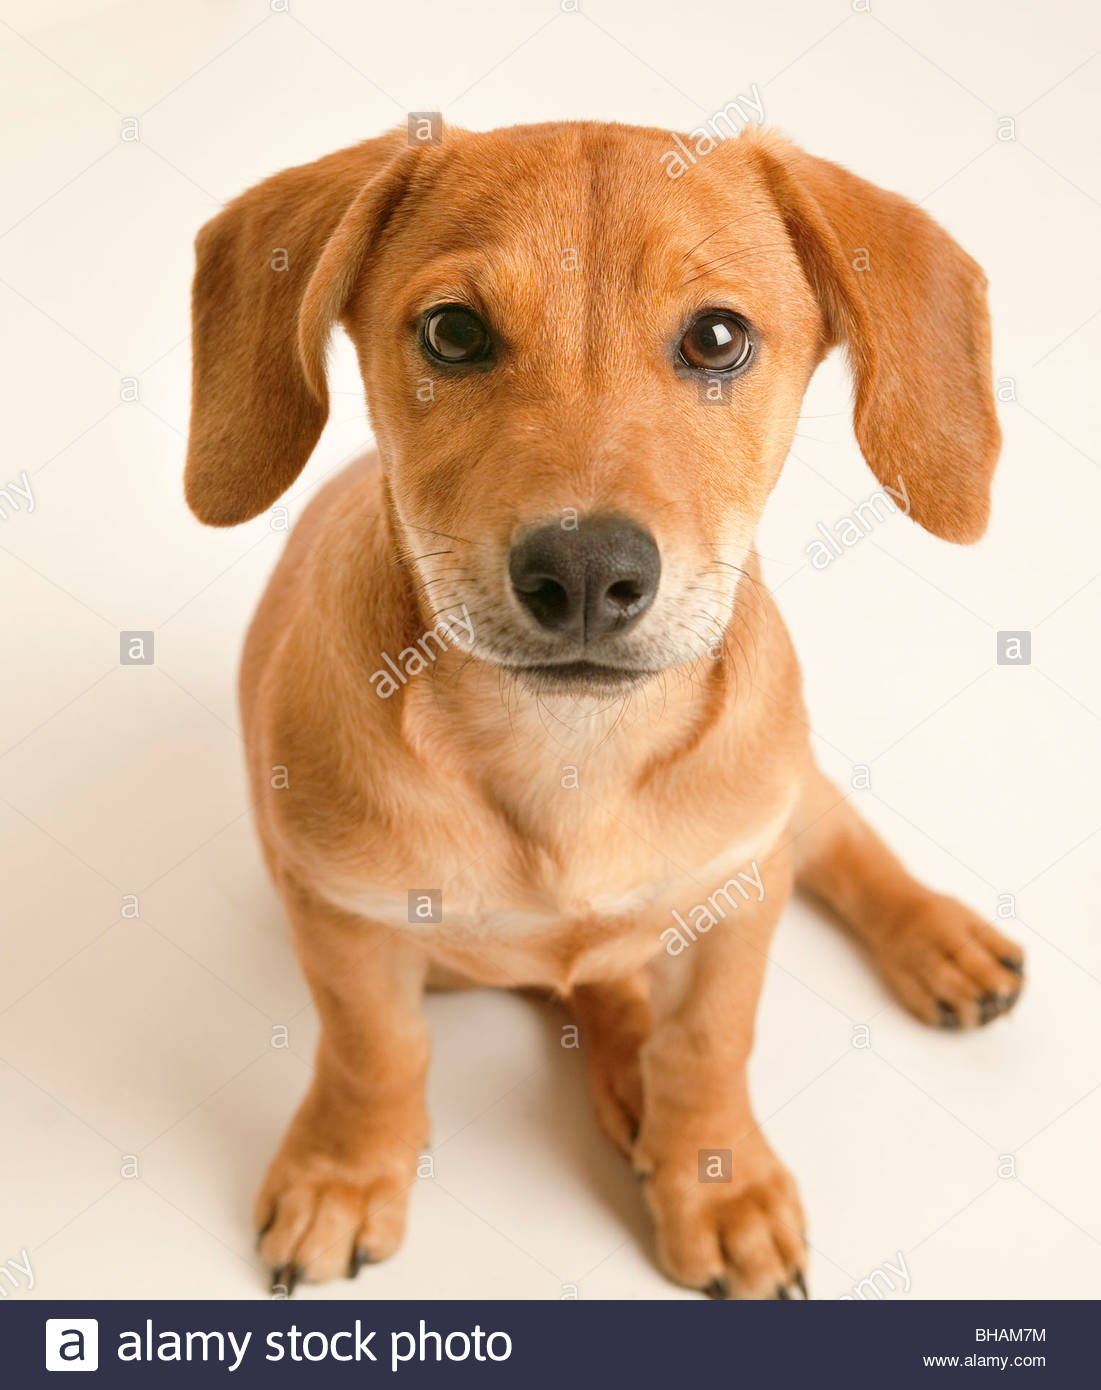 Adorable Puppy staring in camera on white background - Stock Image